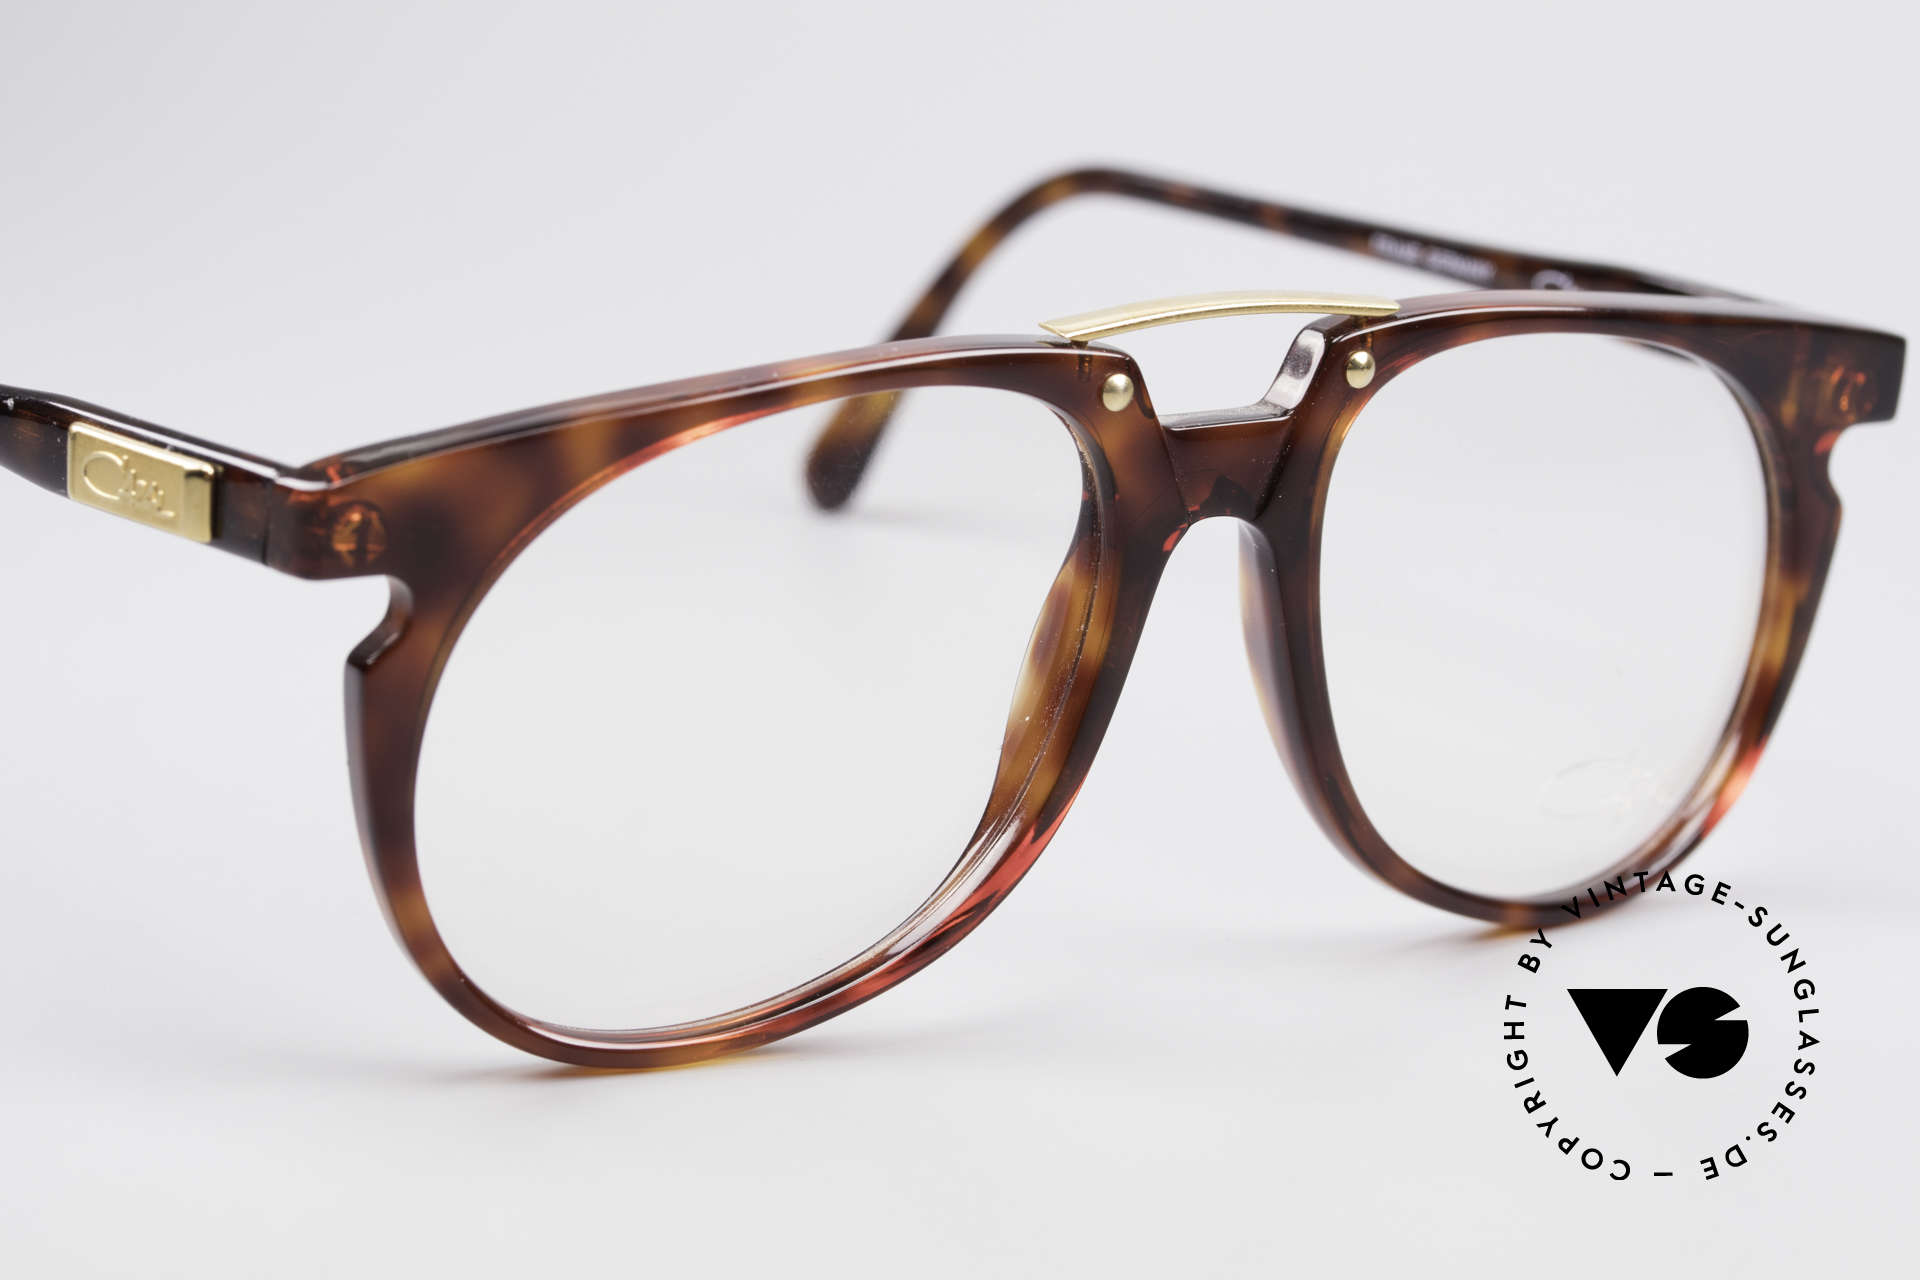 Cazal 645 Extraordinary Vintage Frame, NO RETRO EYEWEAR, but a 25 years old ORIGINAL, Made for Men